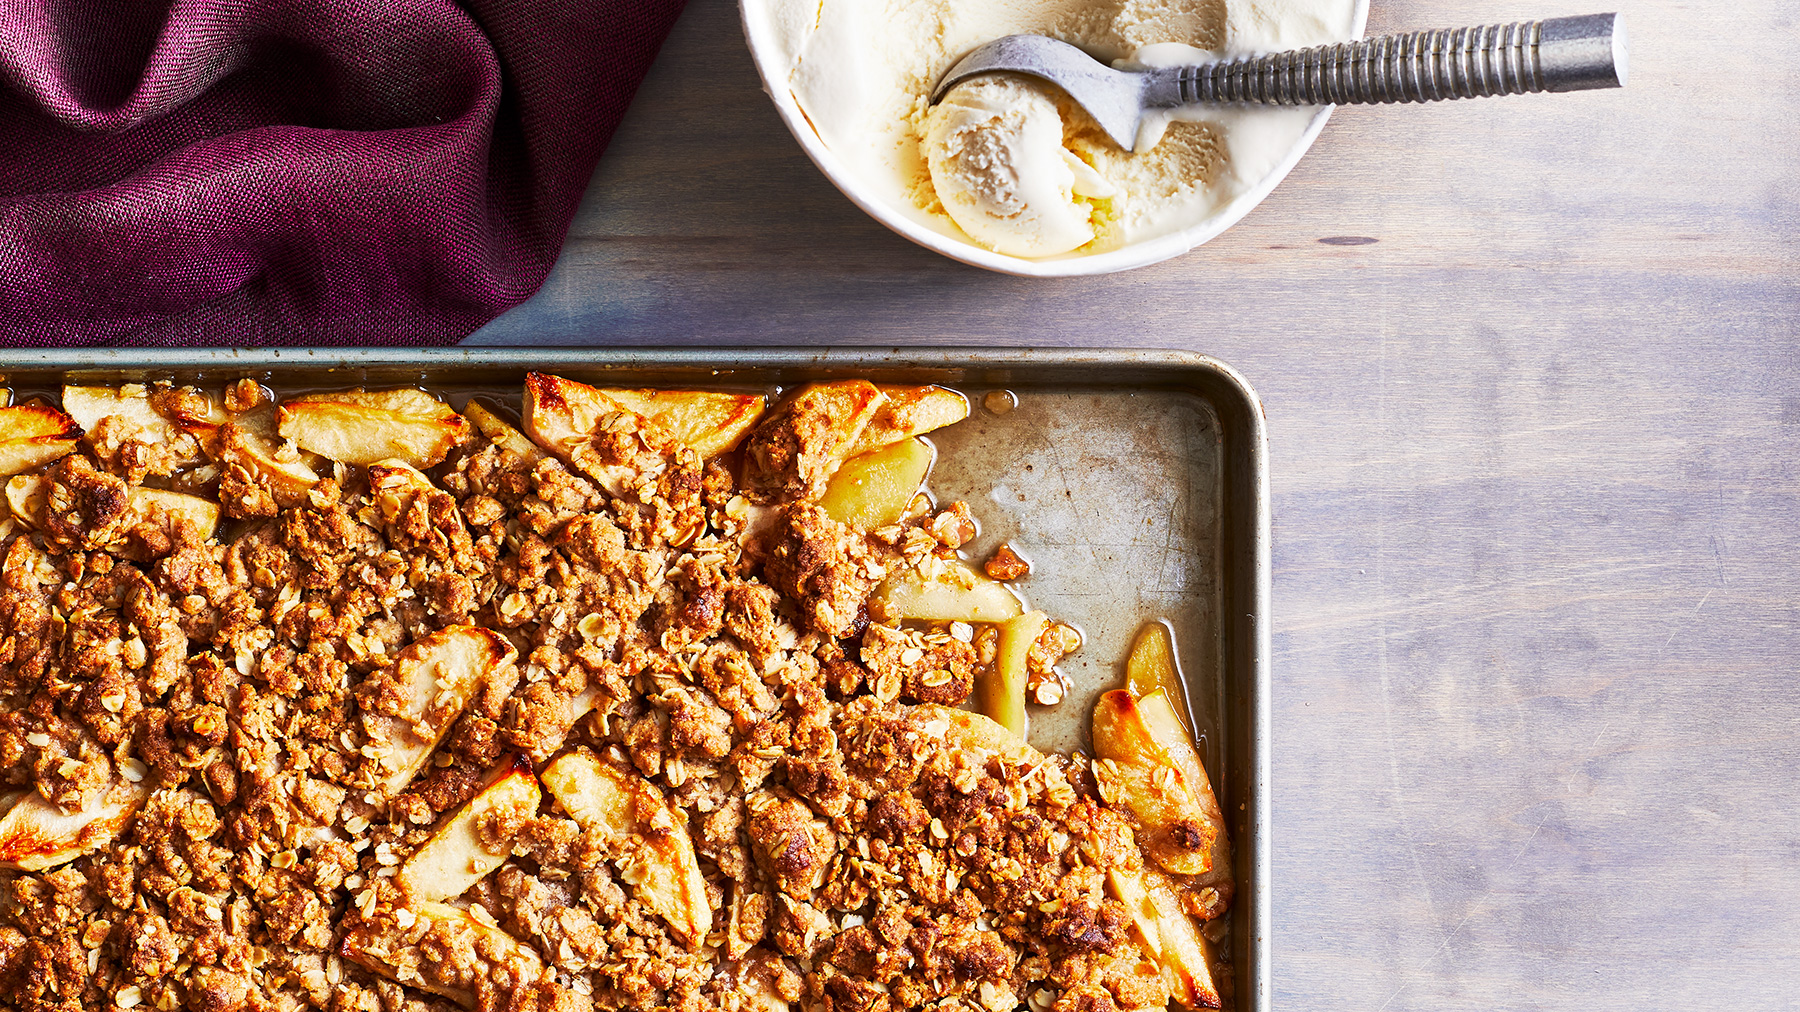 October 2020 Recipes: Sheet Pan Apple Crisp